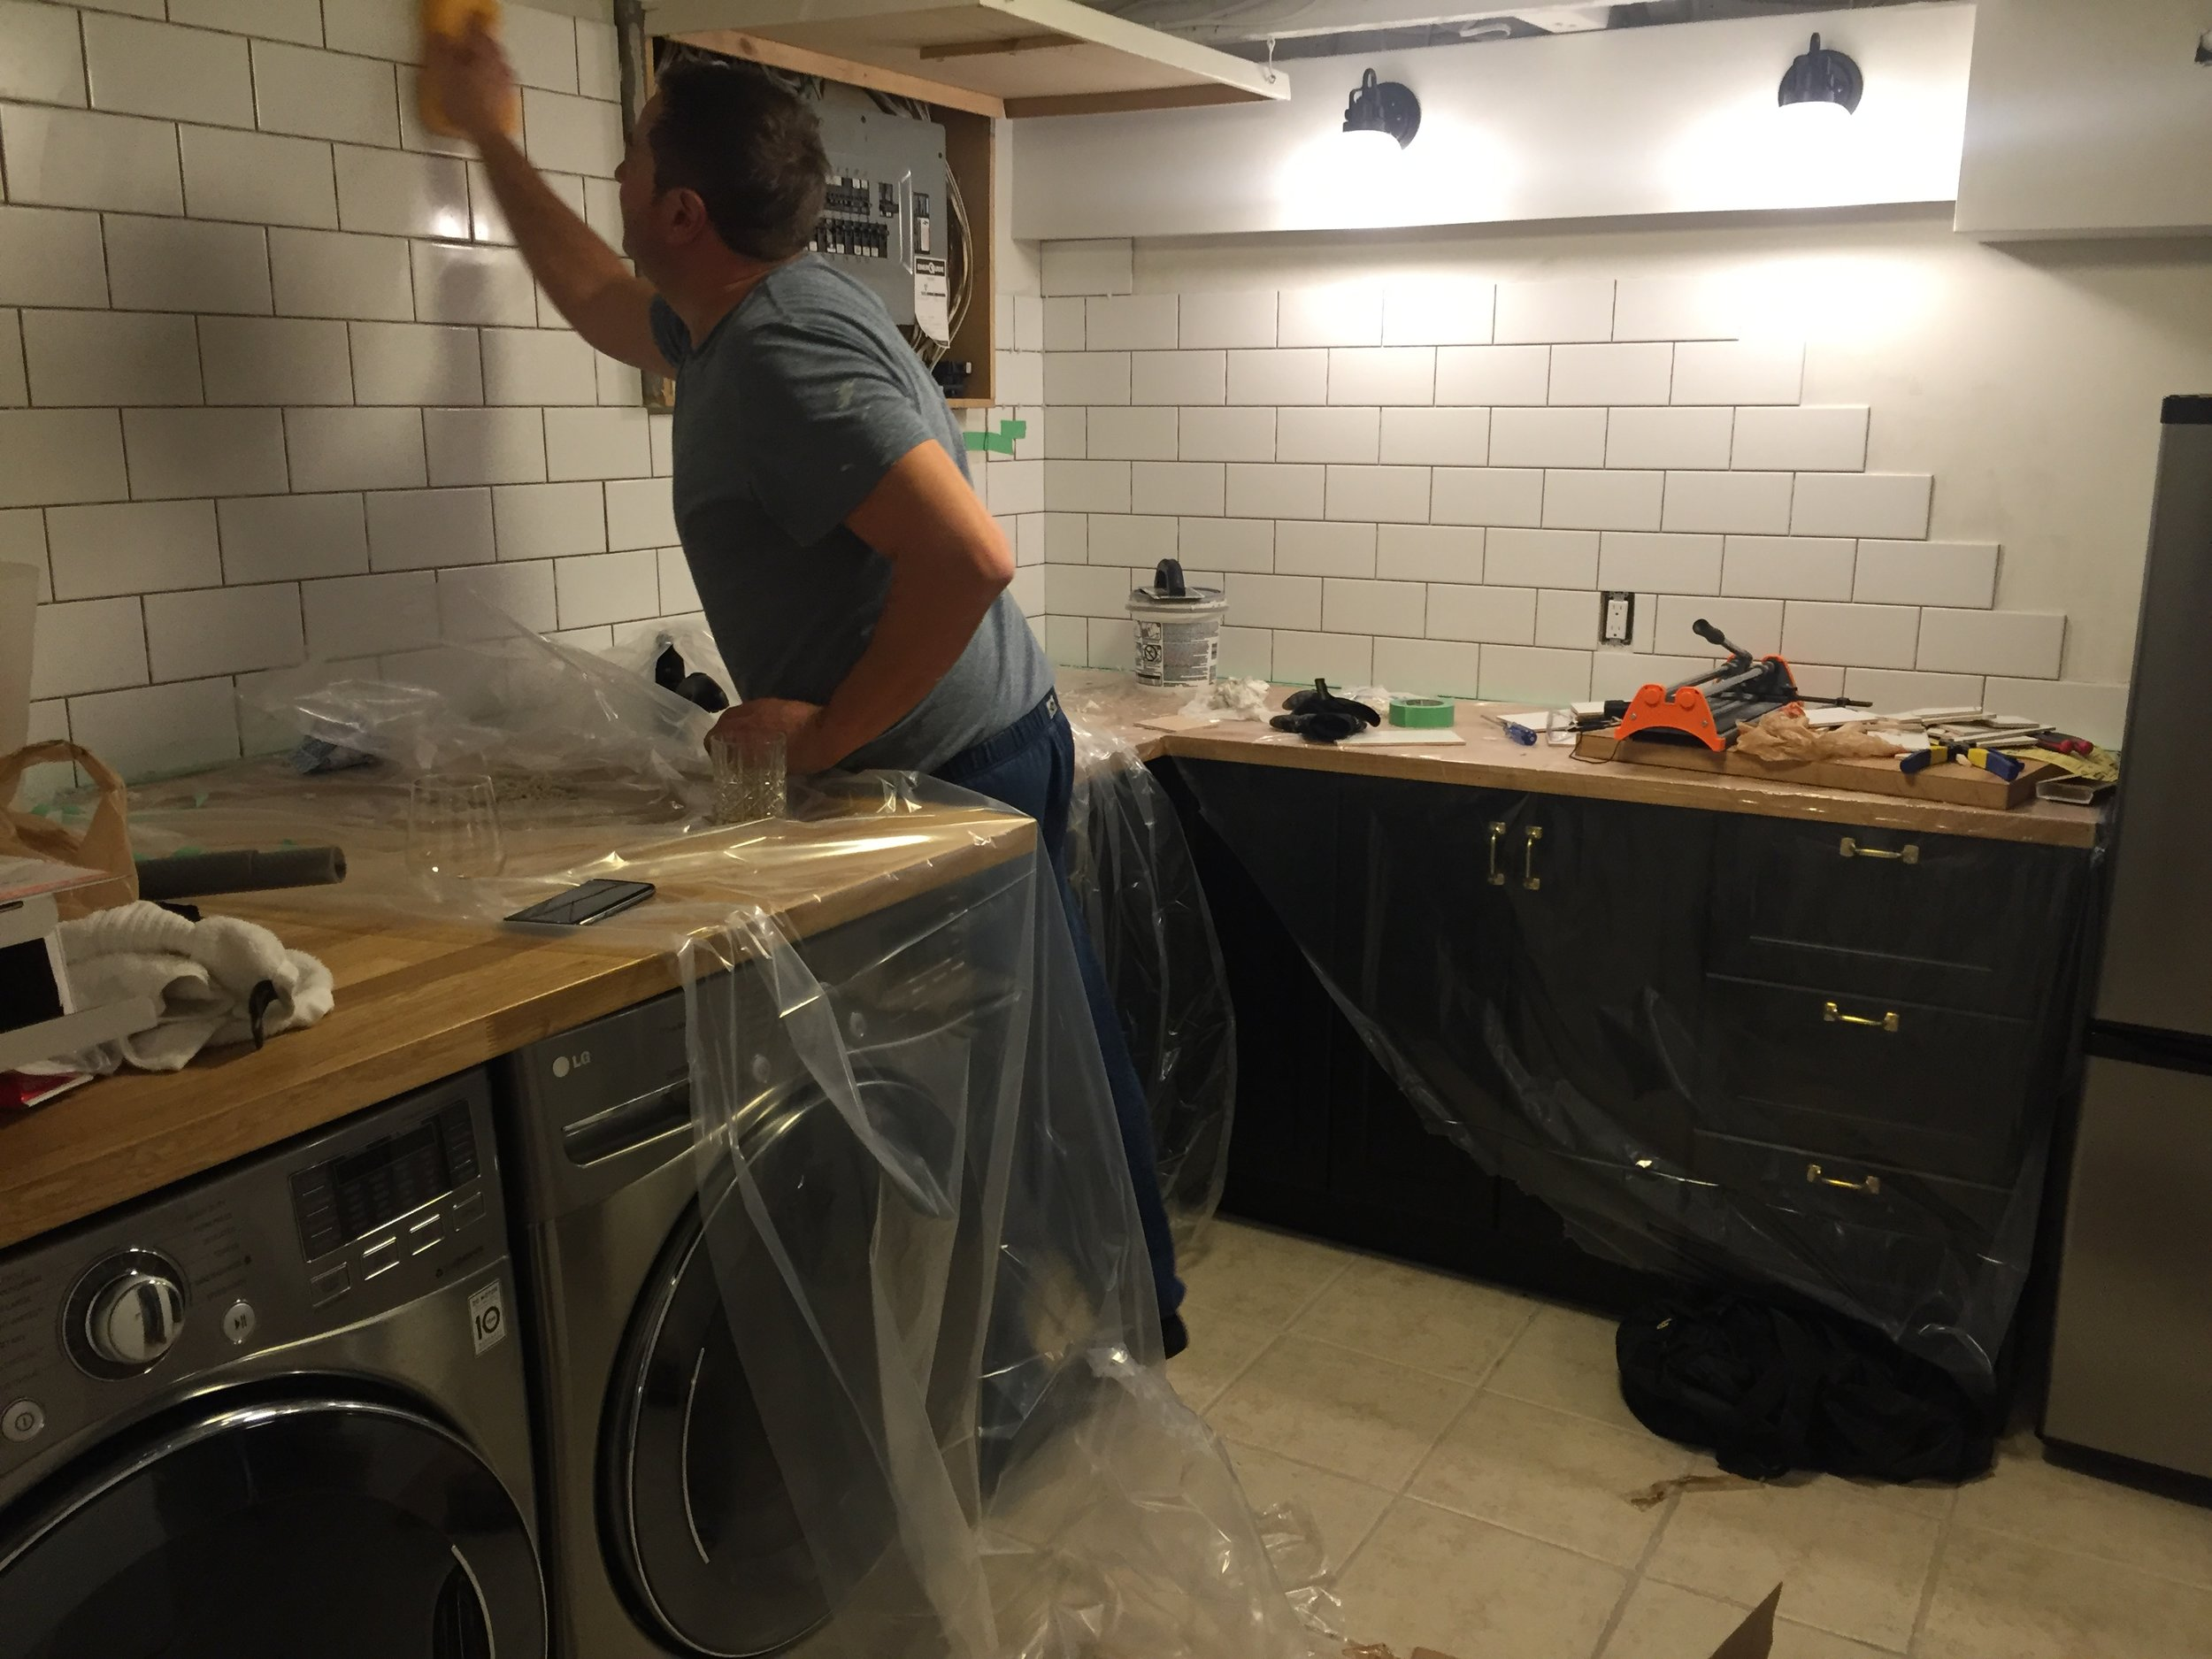 Time for some grouting & finishing touches & we're almost there! We chose a bright white grout - more forgiving than a dark colour especially for my husband's first time !